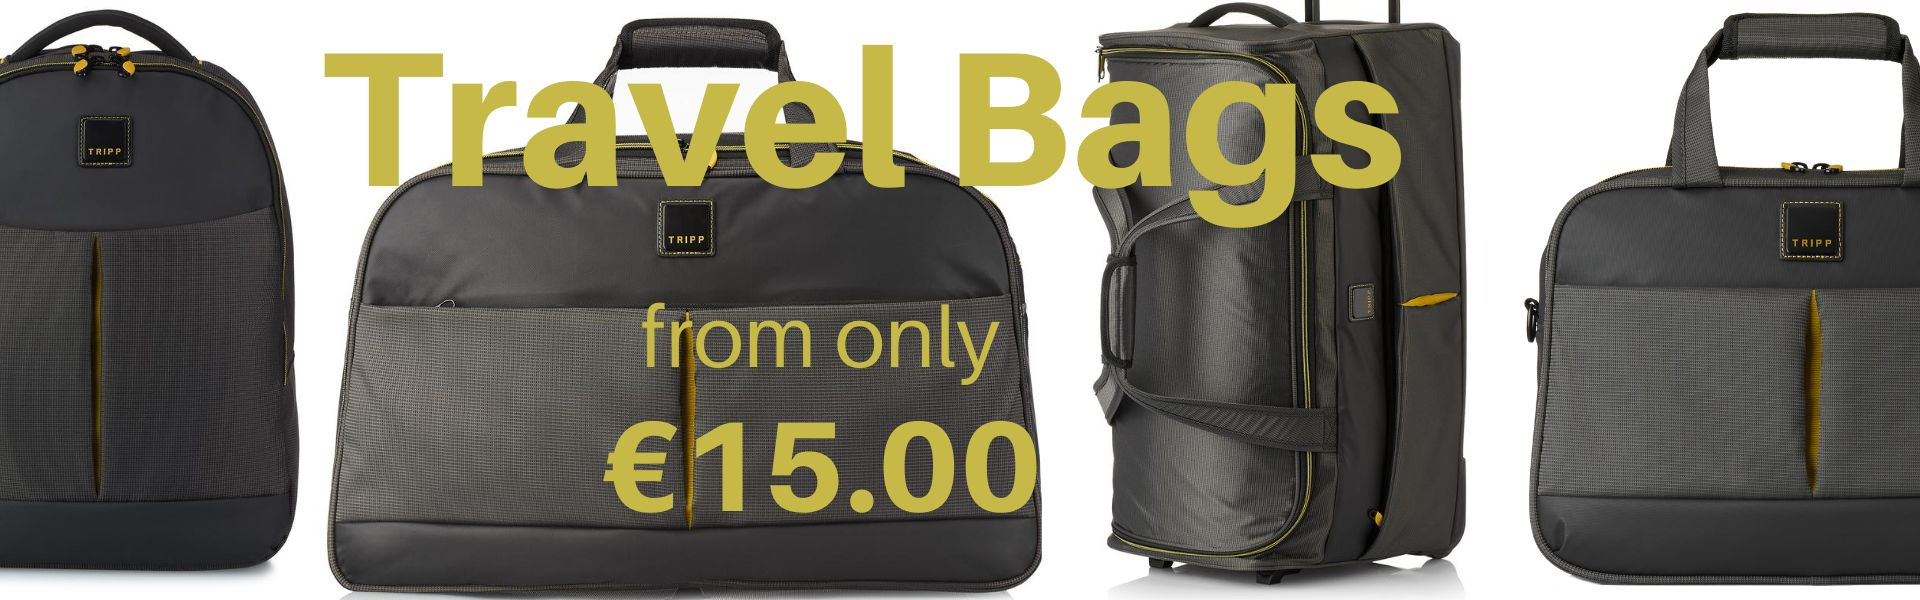 Travel bags from €15